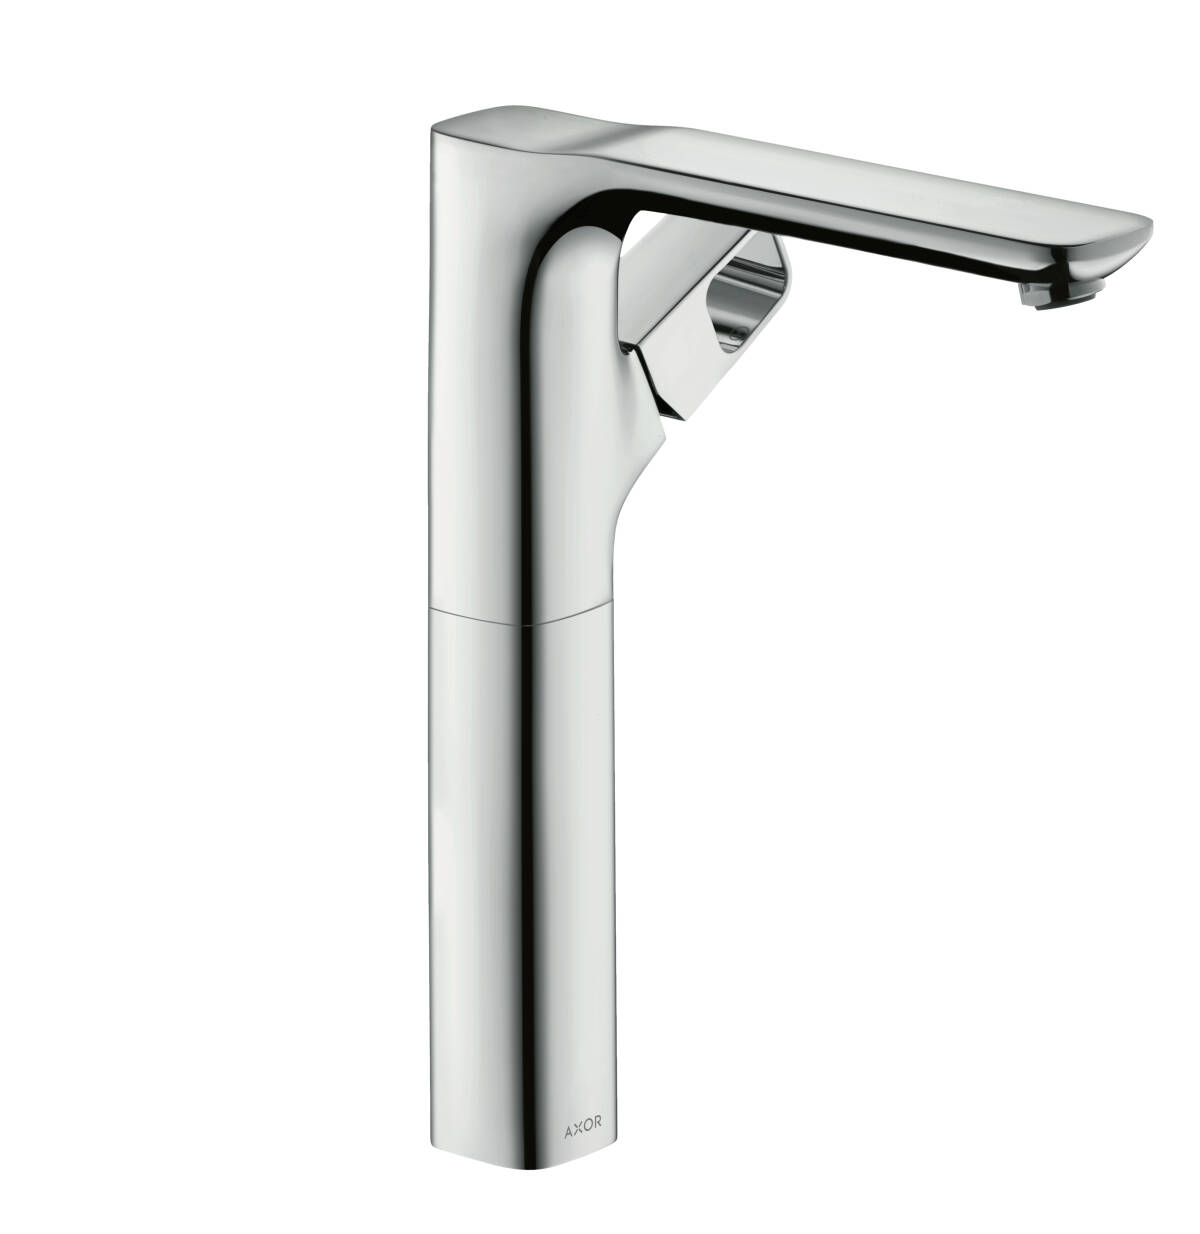 Single lever basin mixer 280 for washbowls with waste set, Chrome, 11035000